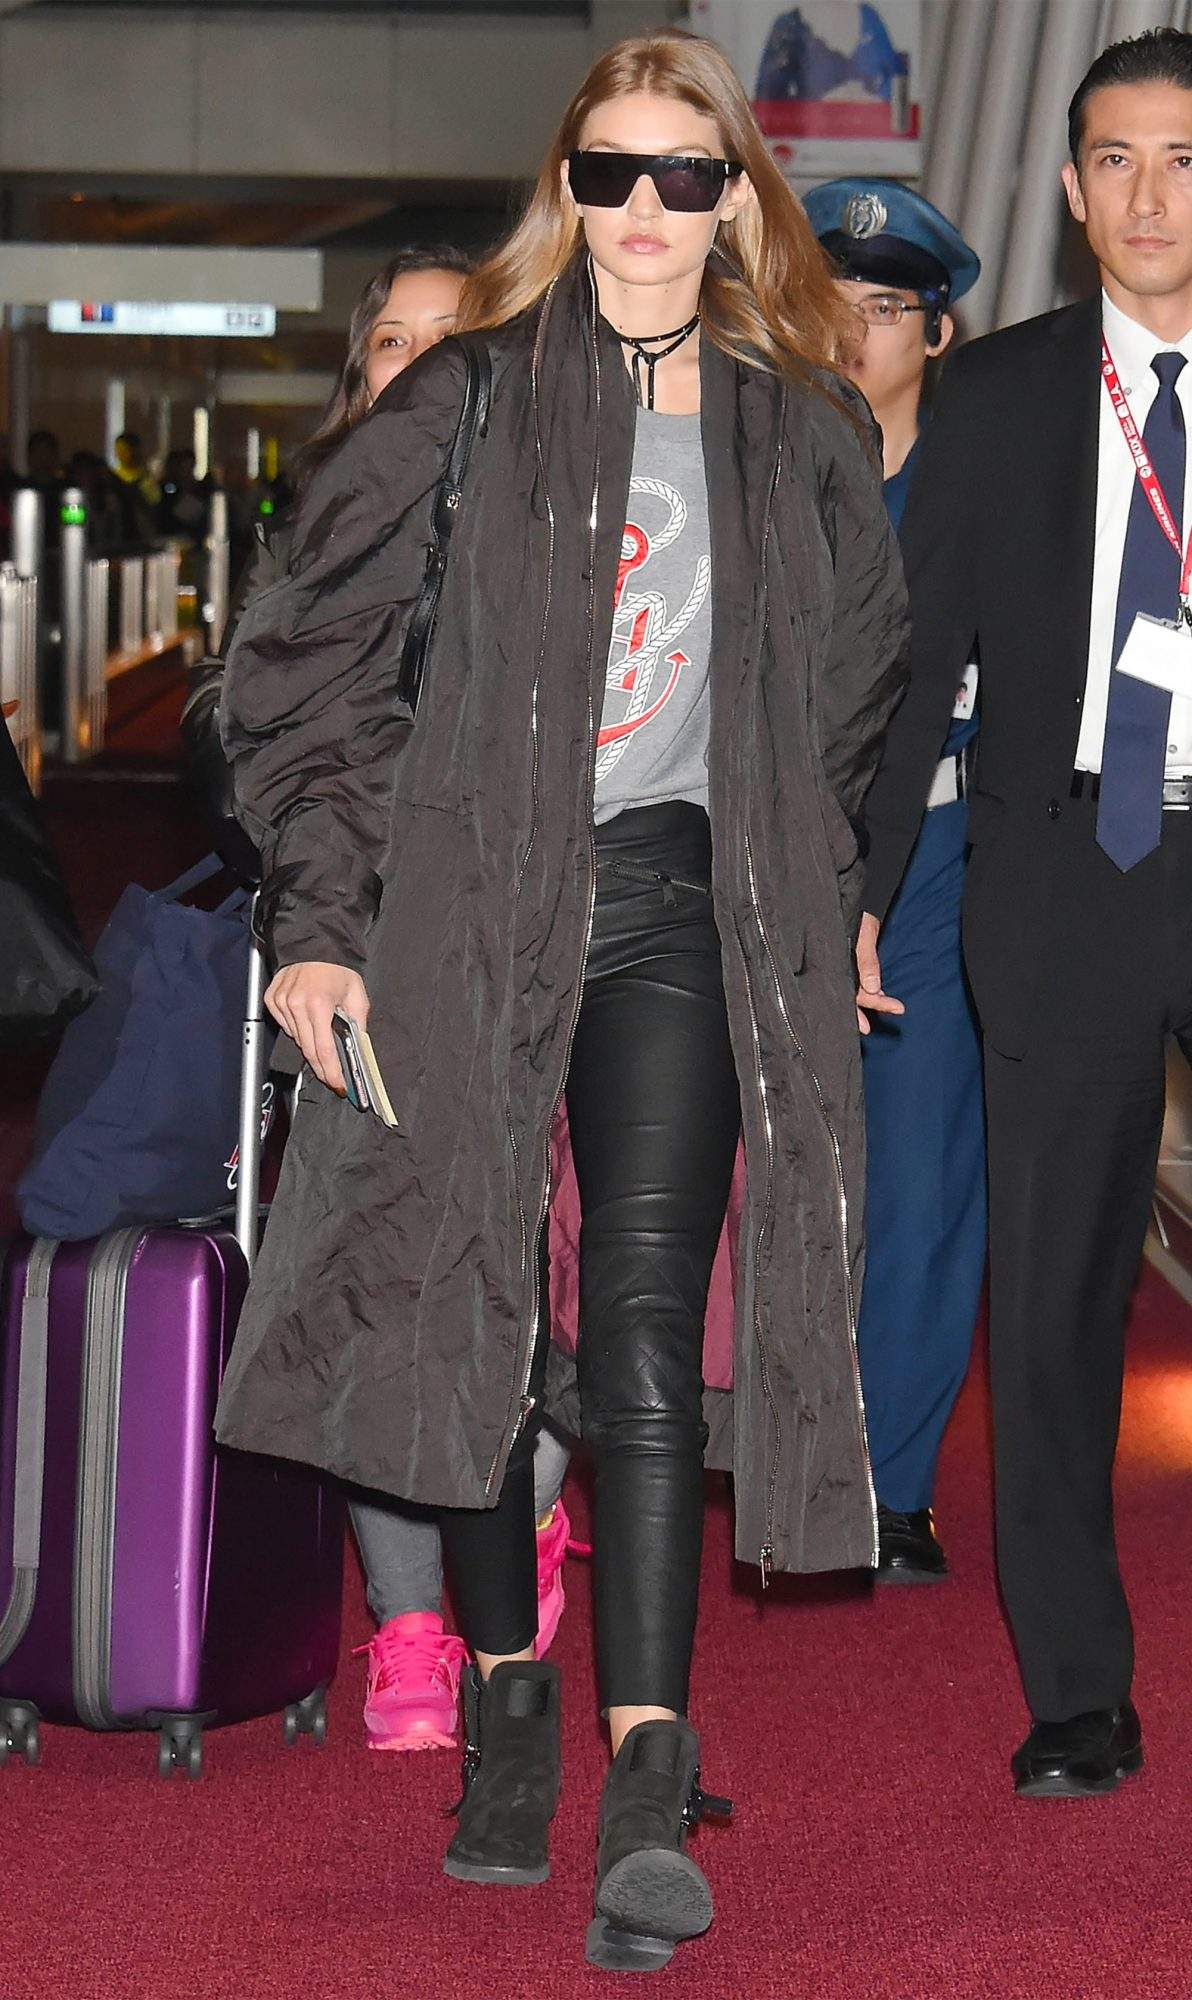 Gigi Hadid Arrives in Tokyo Wearing Edgy Leather Leggings and a Nautical Sweatshirt